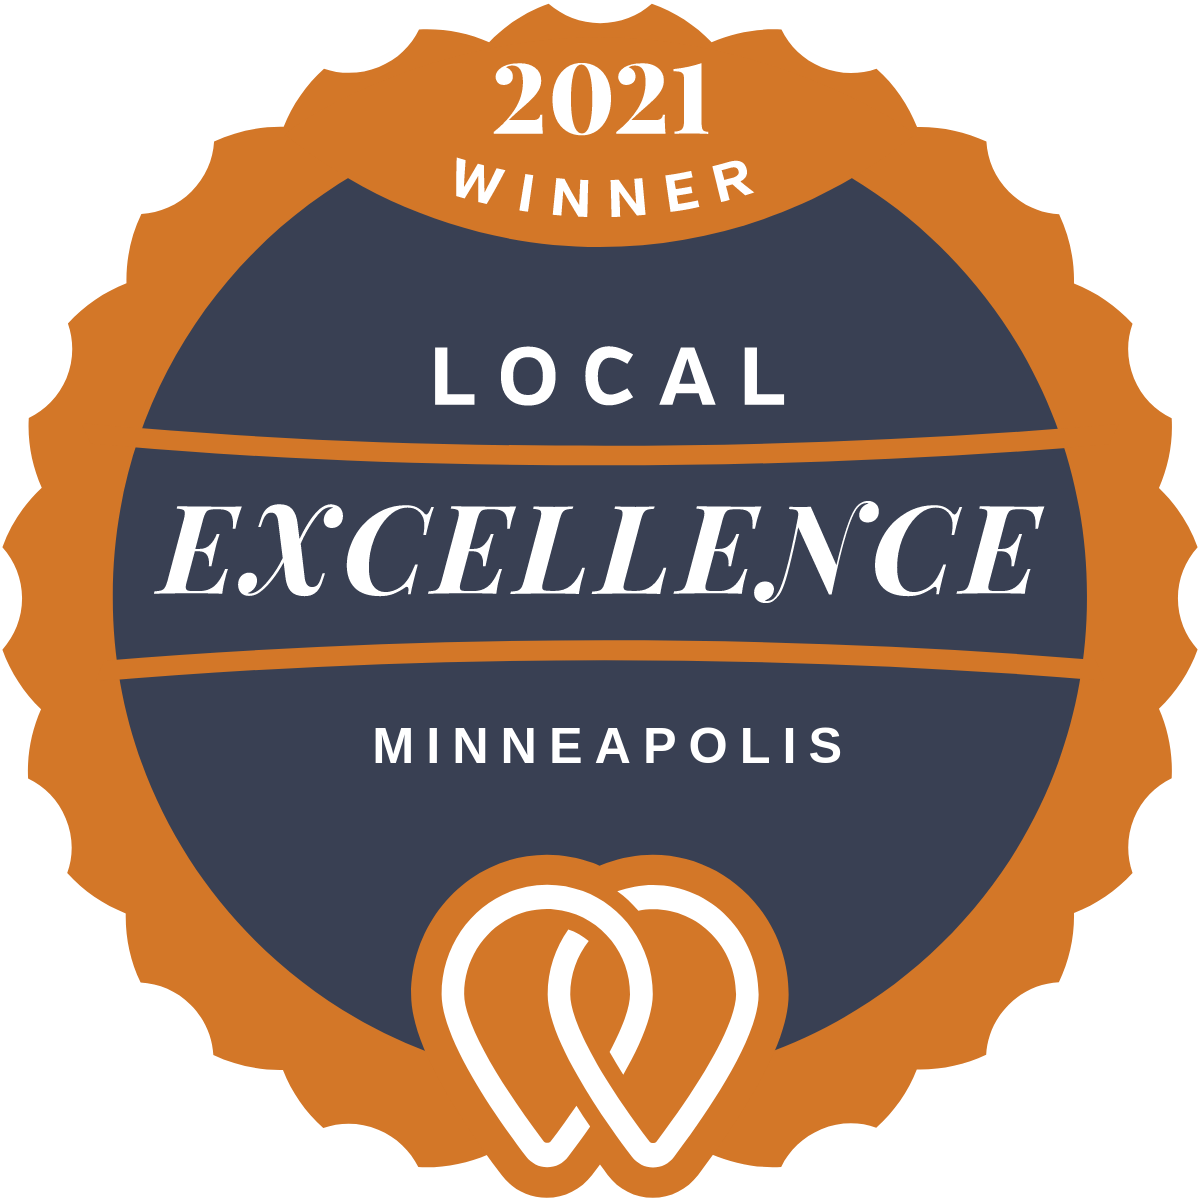 2021 Local Excellence Winner in Minneapolis, MN